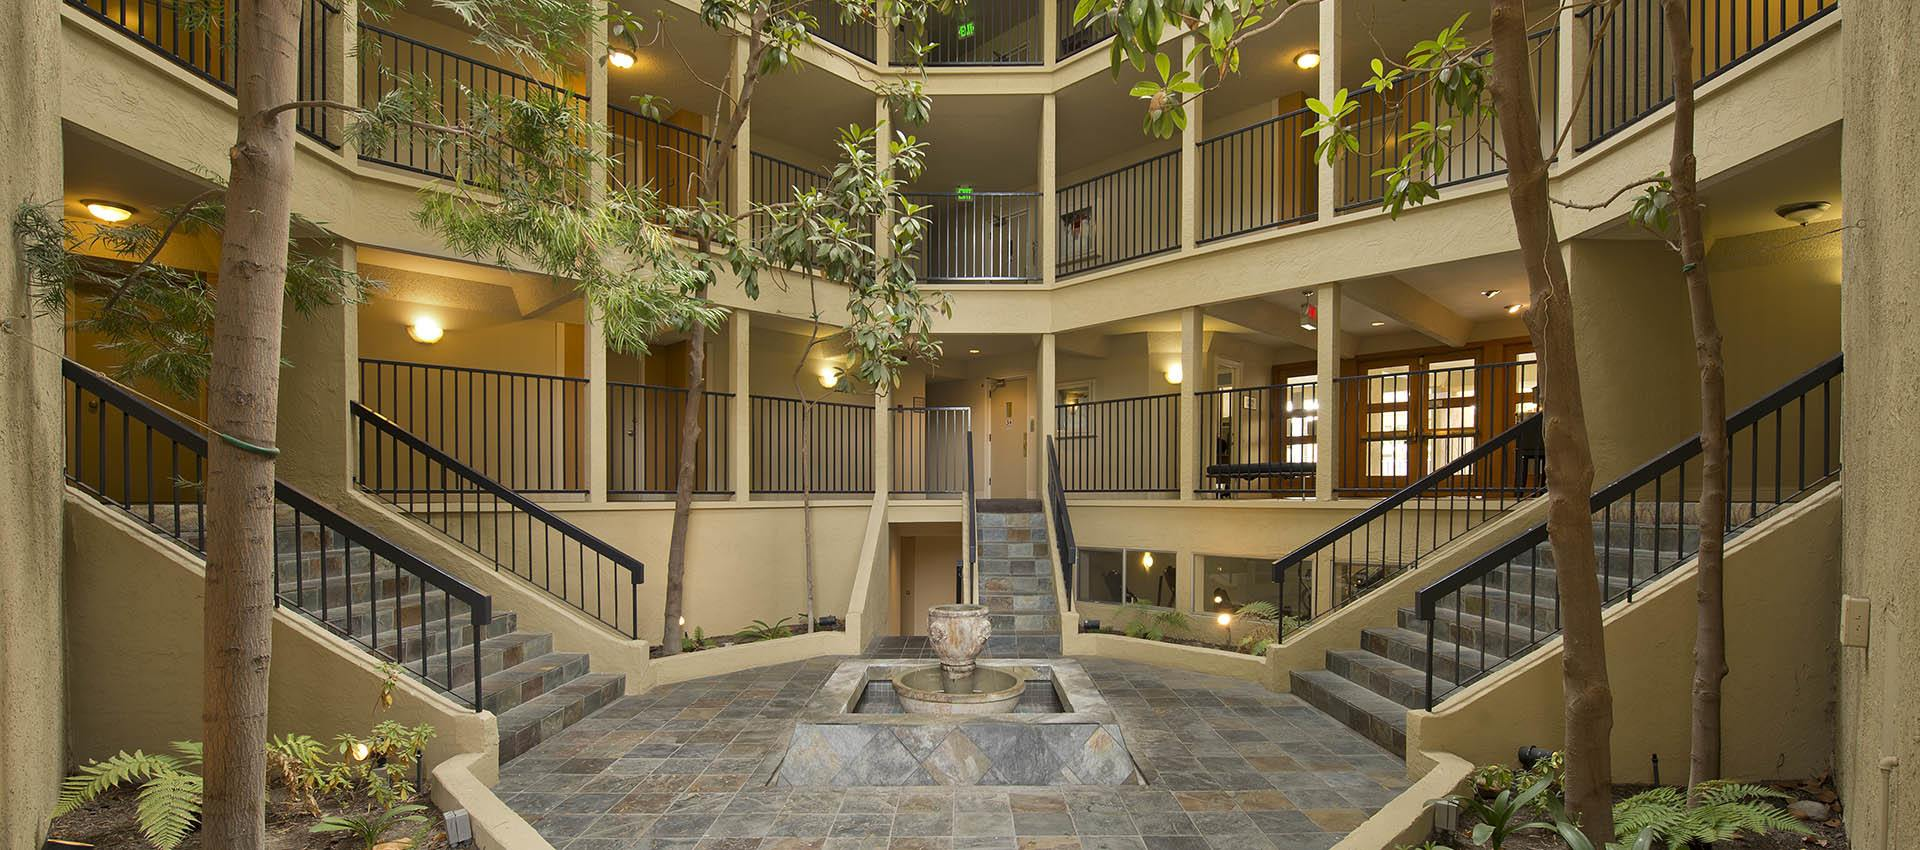 Atrium at Trinity House Apartment Homes in Walnut Creek